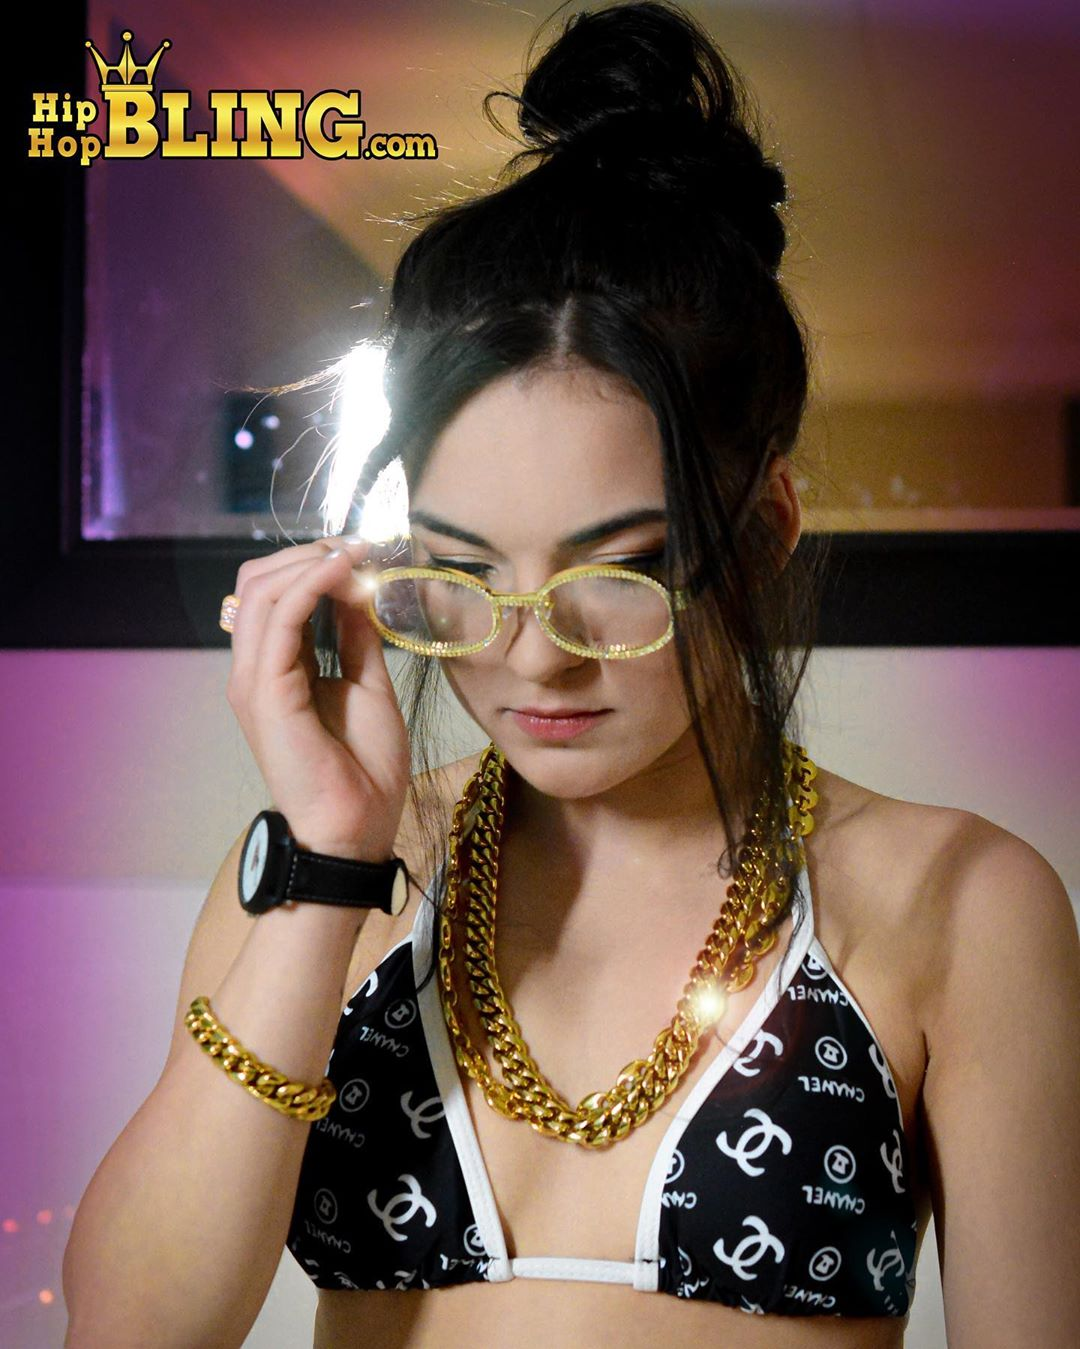 CZ iced out glasses, get your specs at Hip Hop Bling, the premier provider of hip hop jewelry